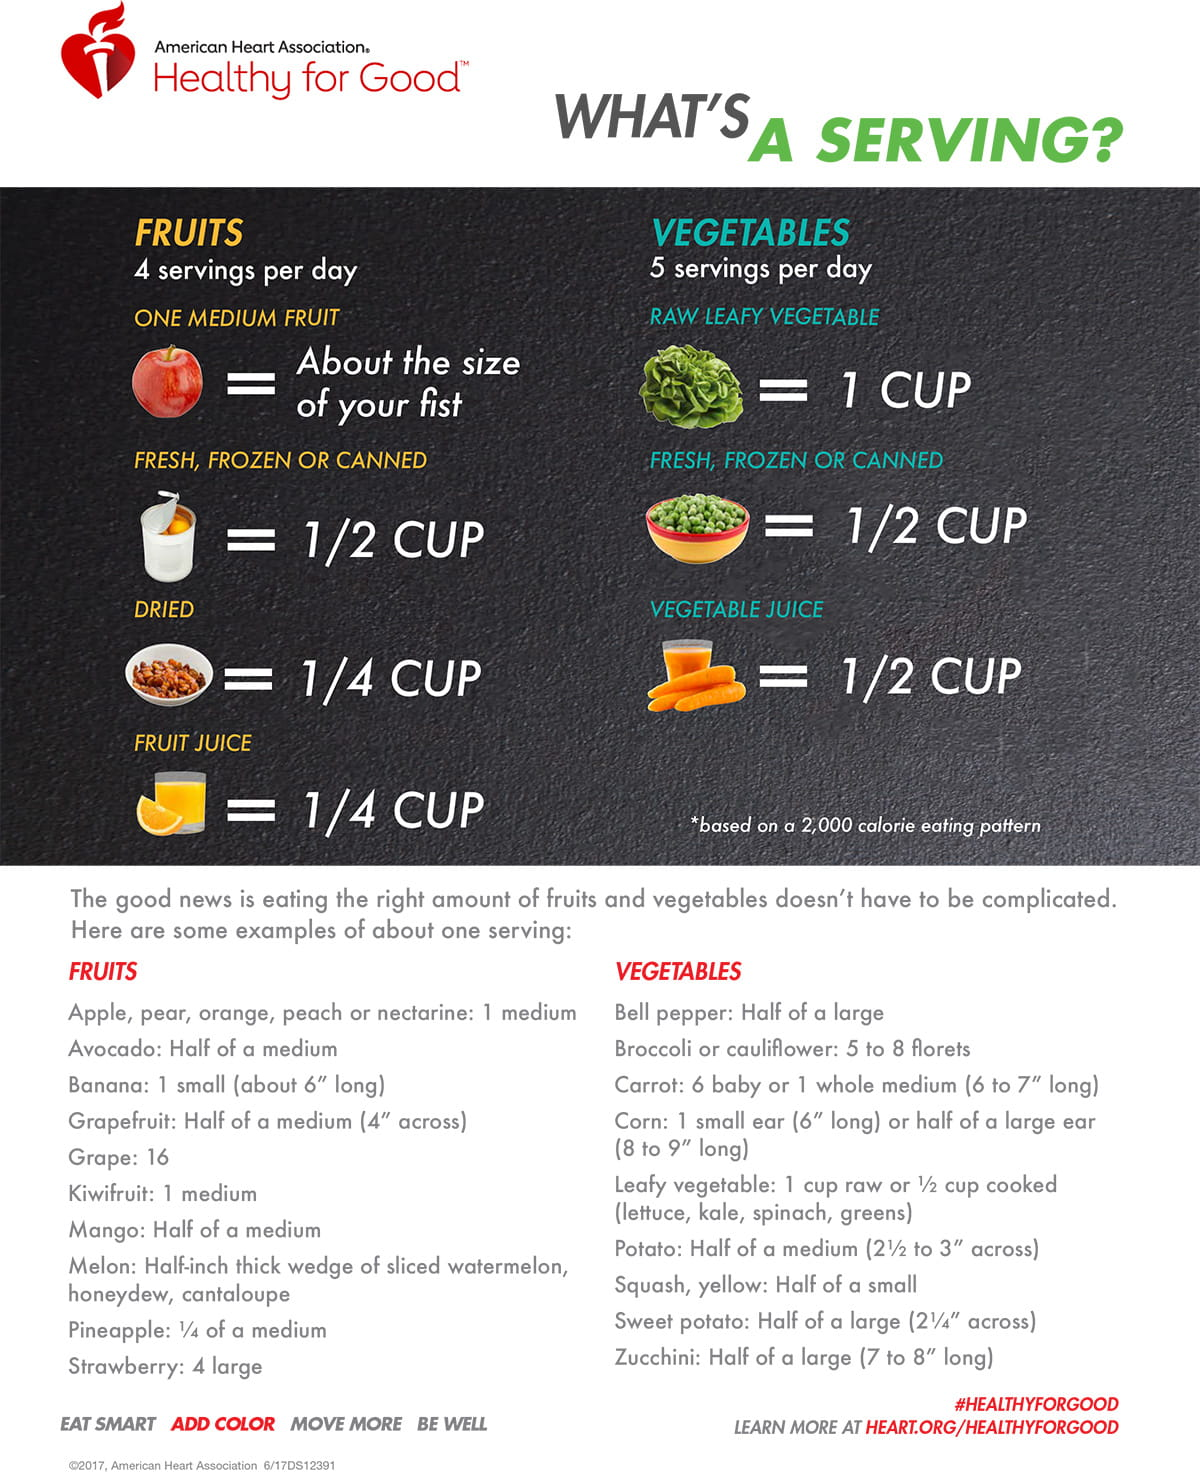 Fruits and Vegetables Serving Sizes | American Heart Association